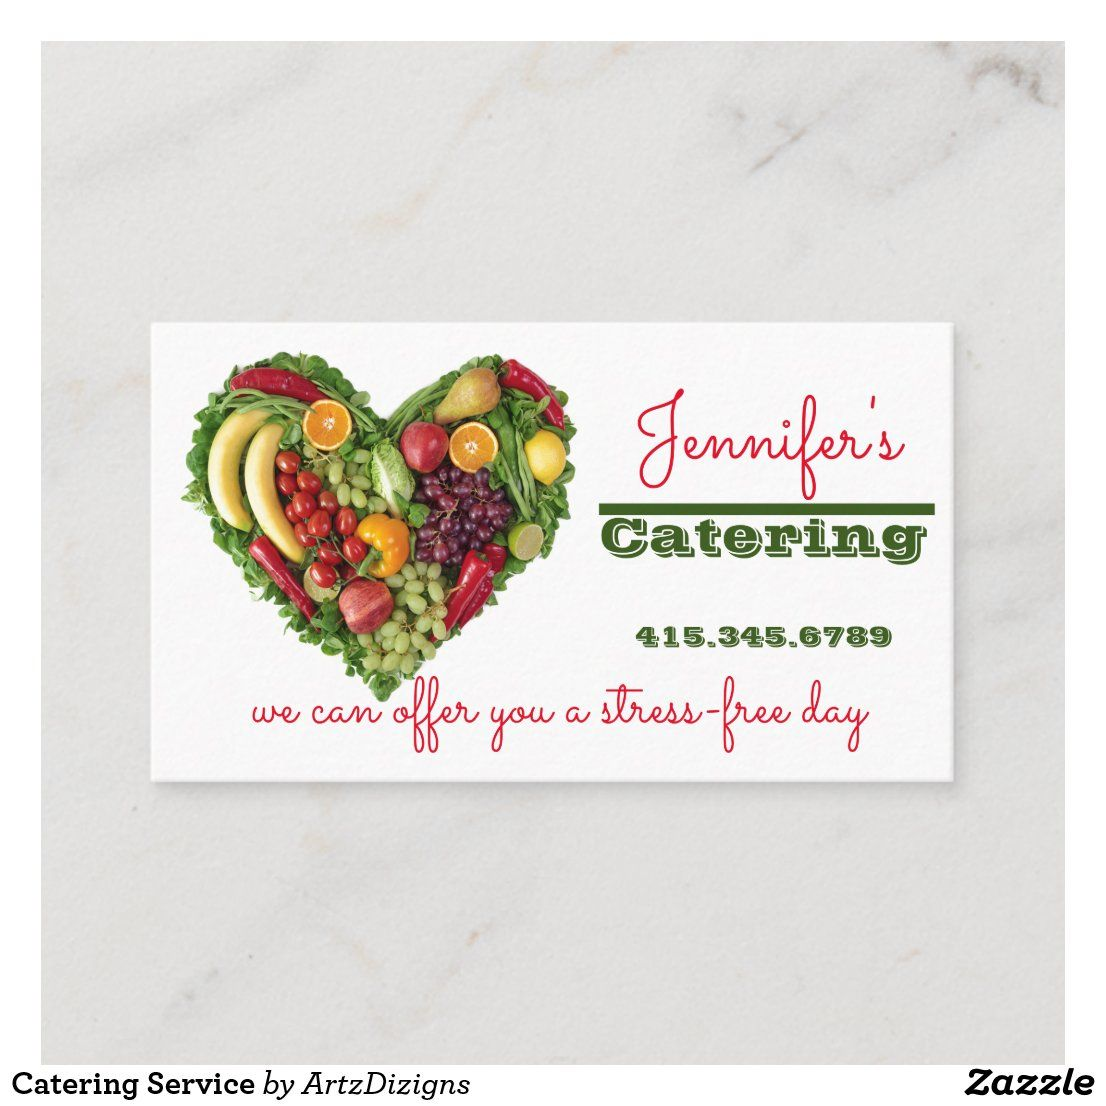 Catering Service Business Card | Zazzle.com